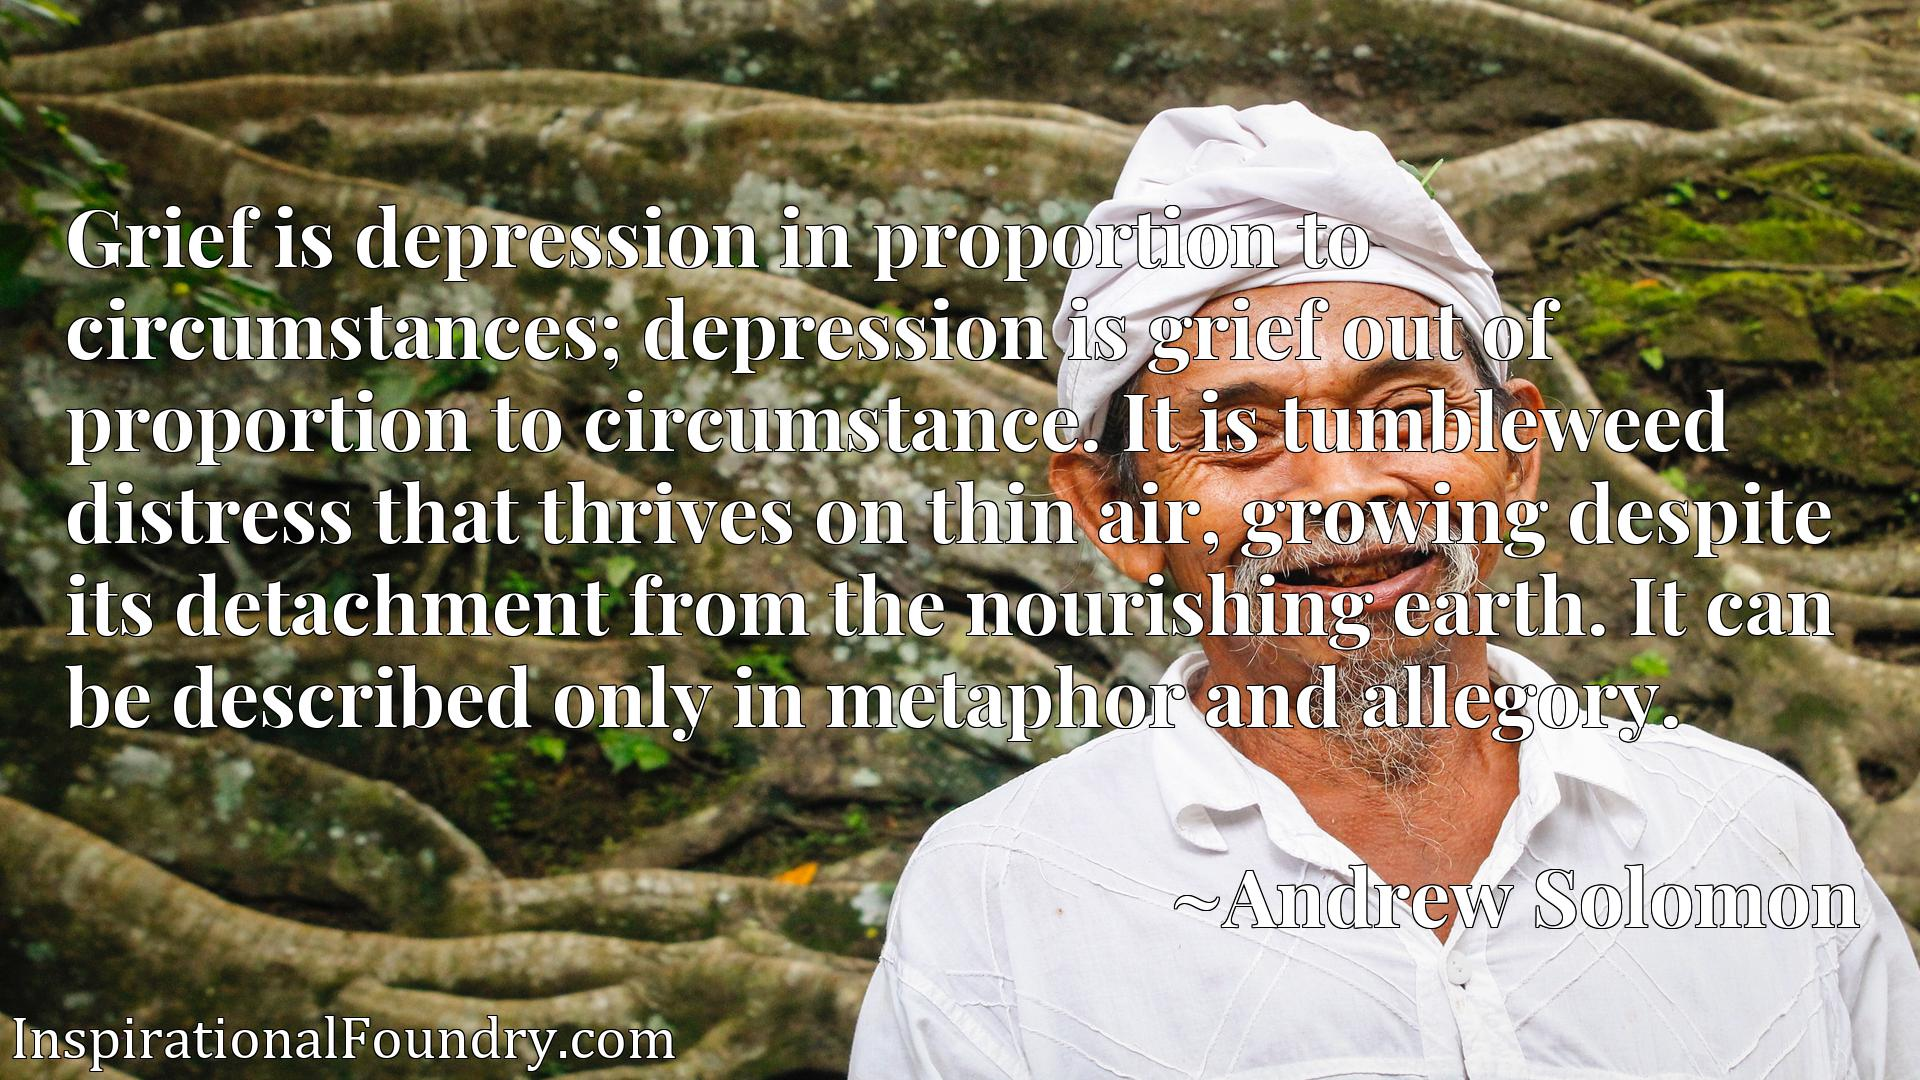 Grief is depression in proportion to circumstances; depression is grief out of proportion to circumstance. It is tumbleweed distress that thrives on thin air, growing despite its detachment from the nourishing earth. It can be described only in metaphor and allegory.